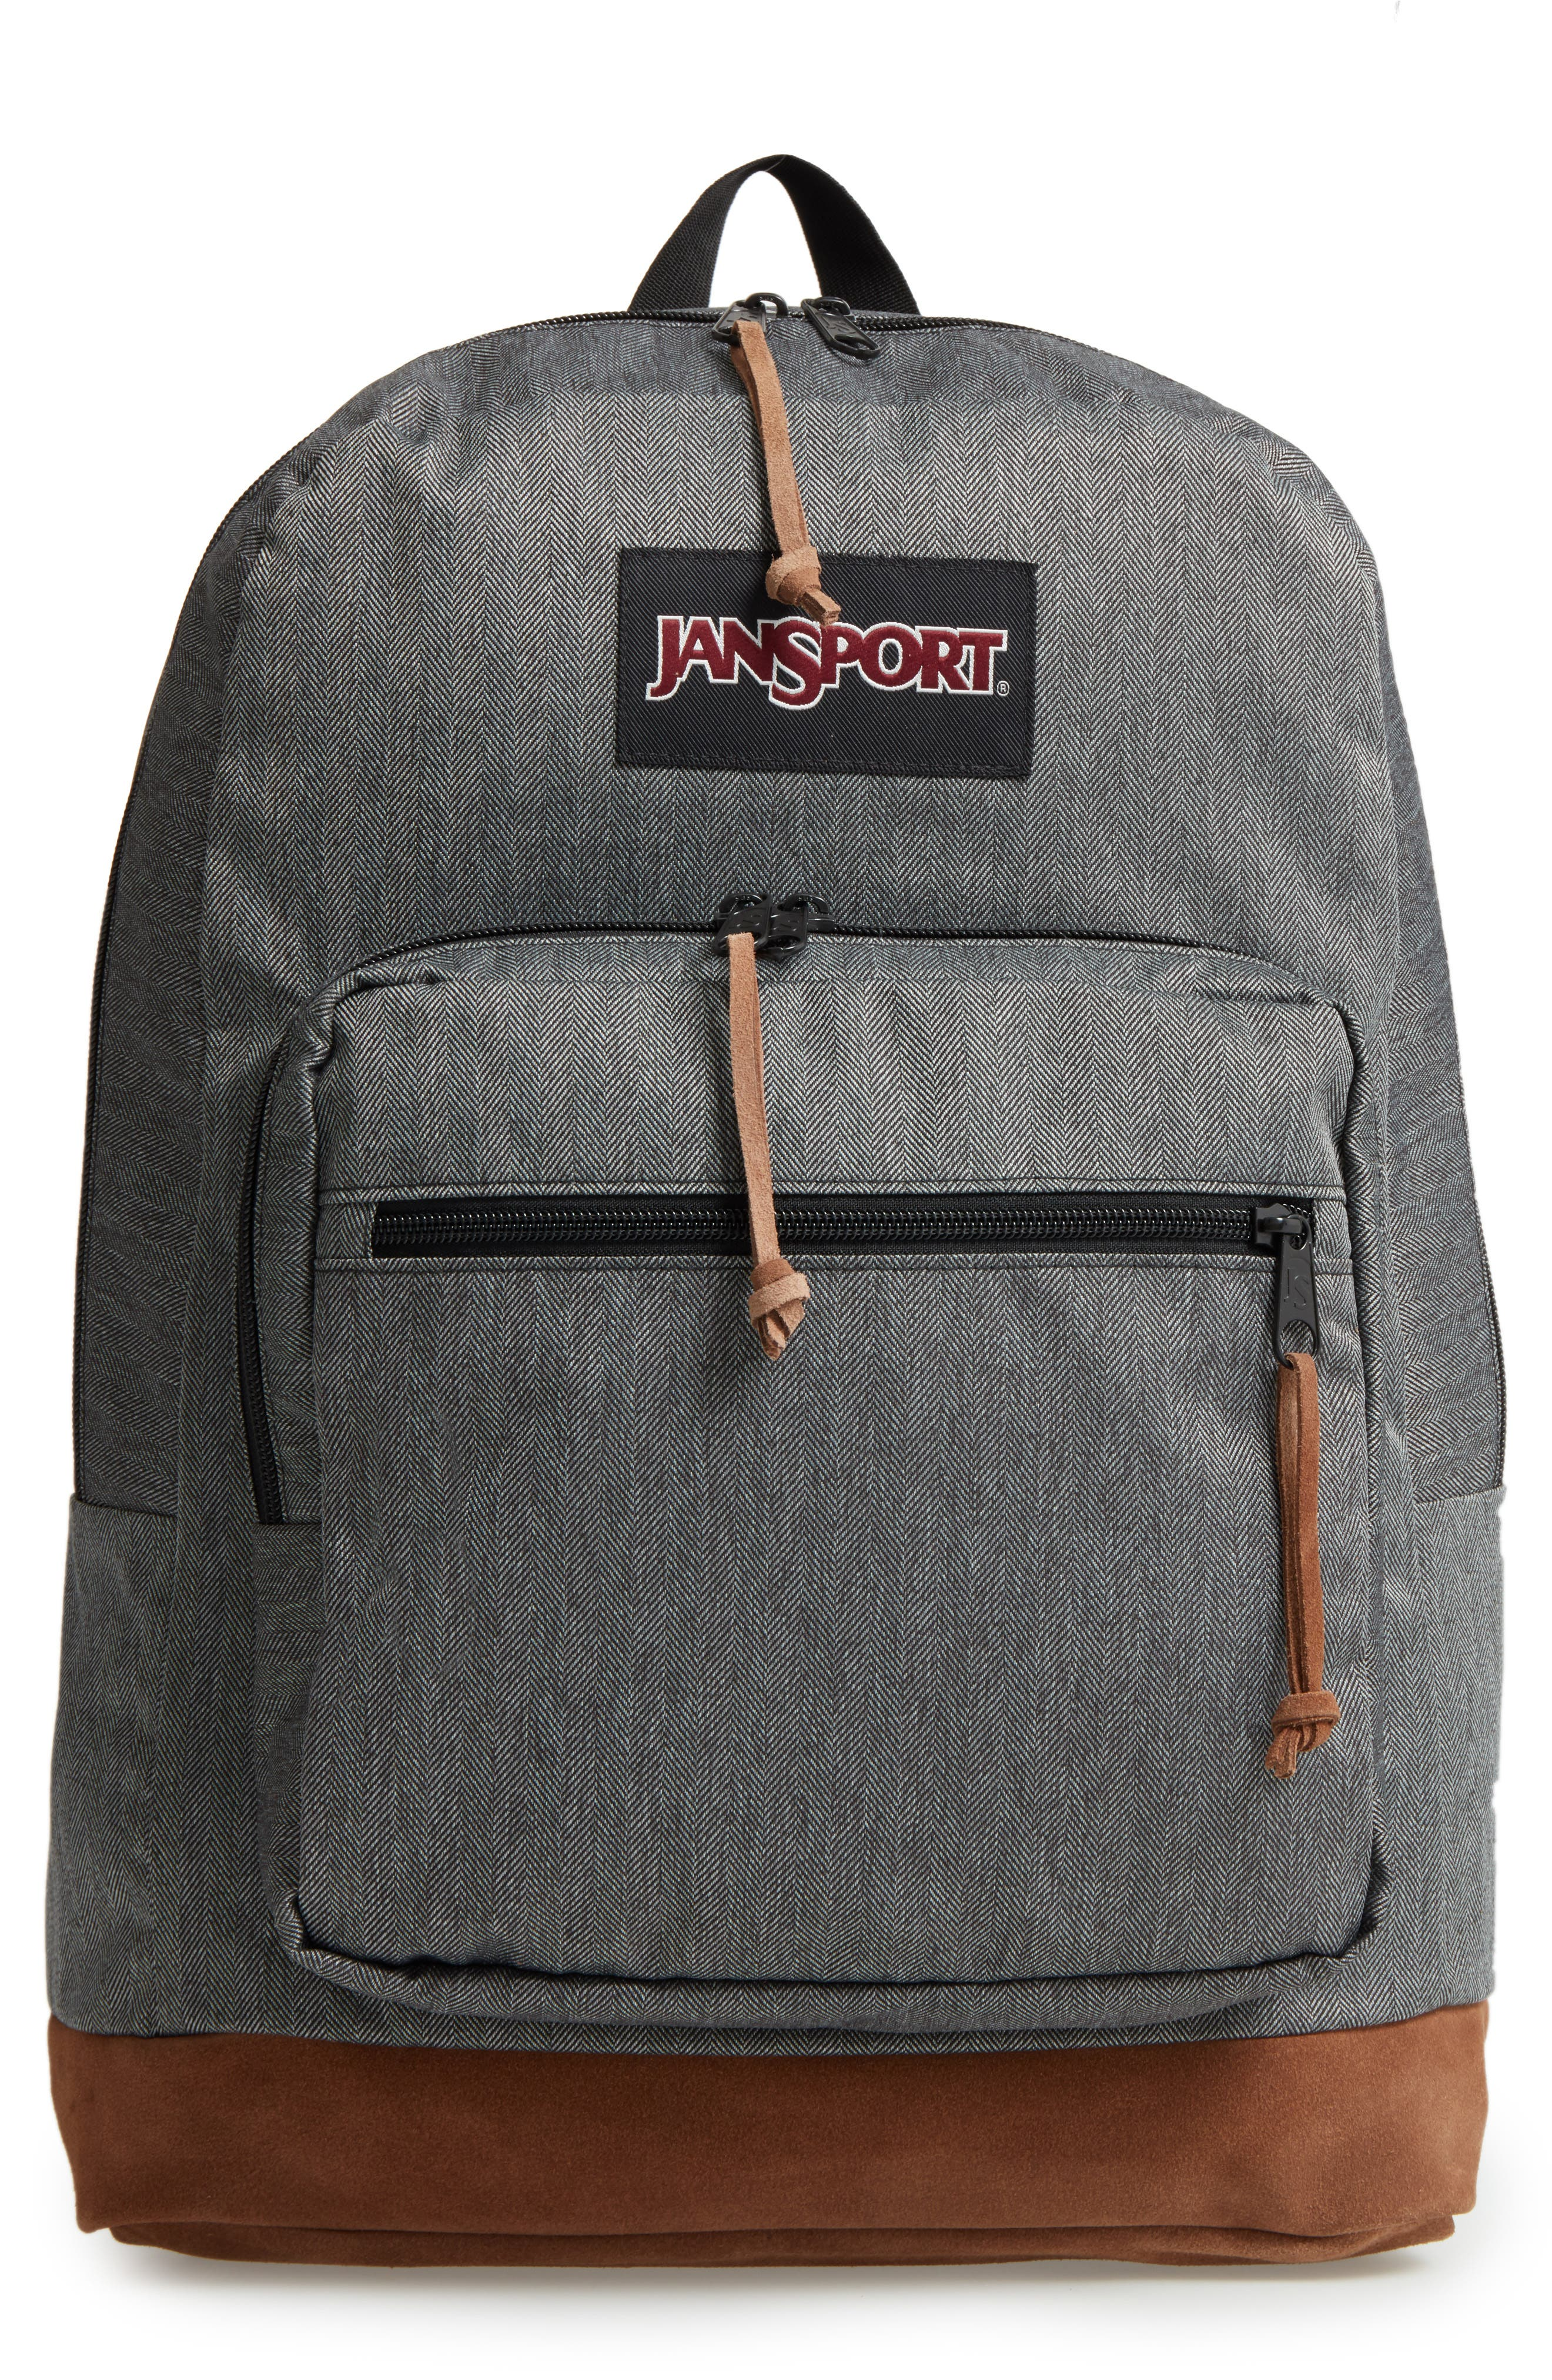 Jansport 'Right Pack' Backpack -